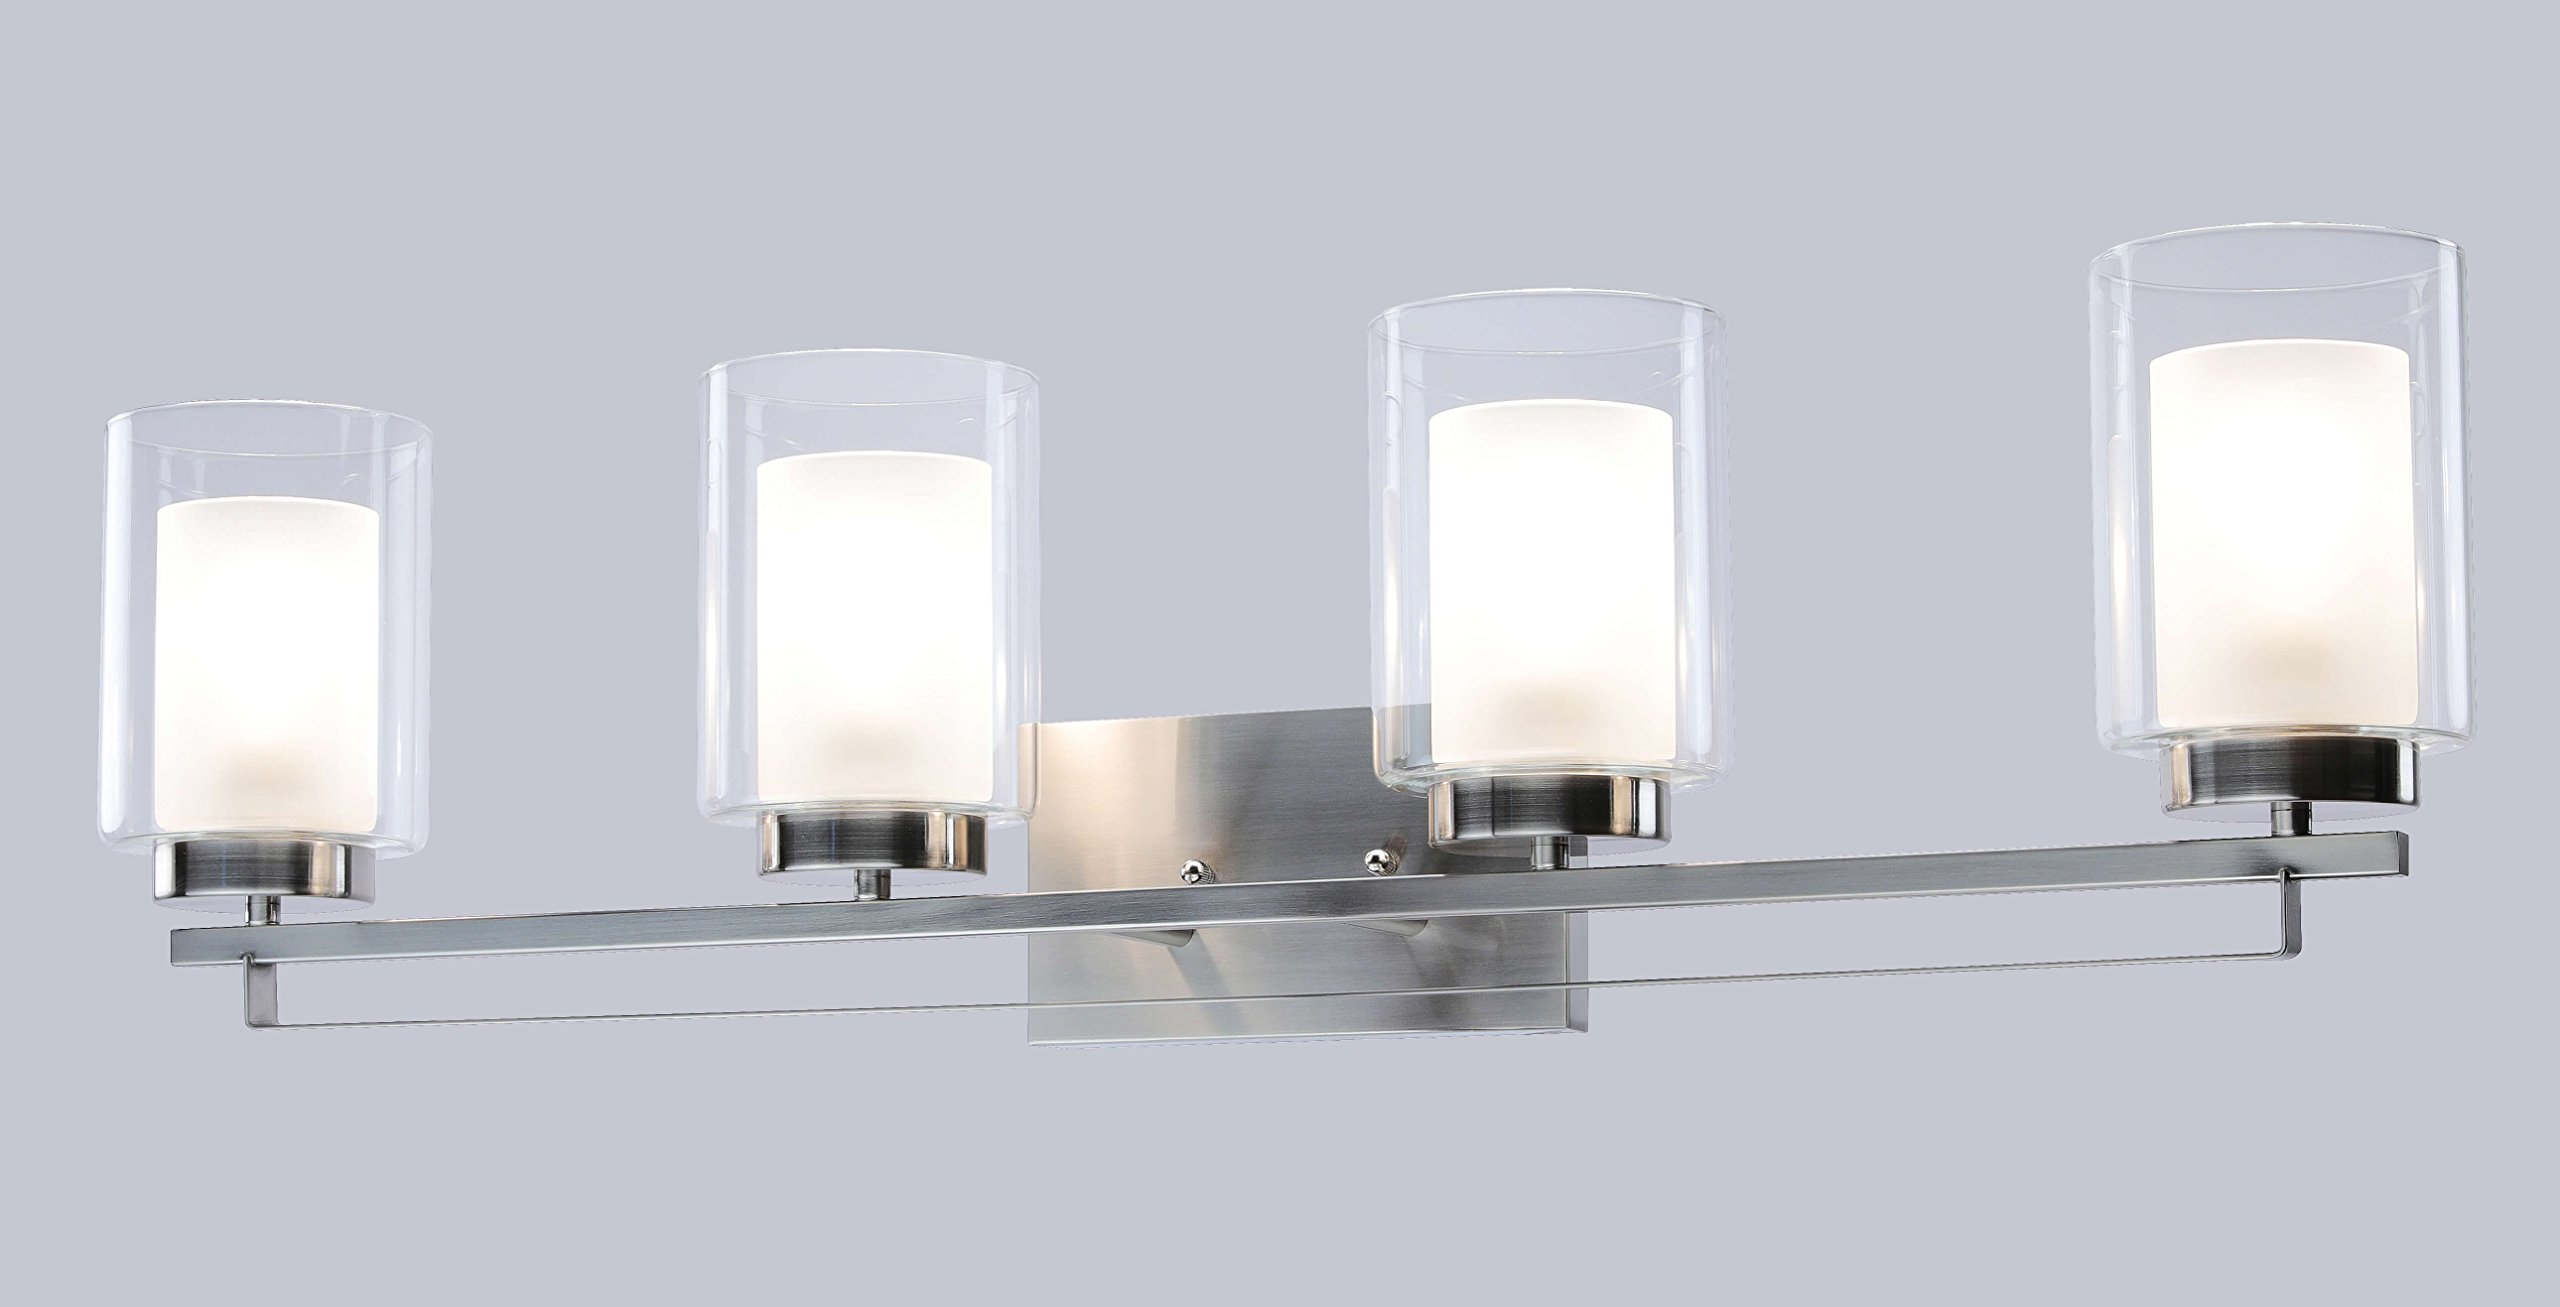 Wall Light 4 Light Bathroom Vanity Lighting with Dual Glass Shade in Brushed Nickel Indoor Modern Wall Mount Light for Bathroom & Kitchen XiNBEi-Lighting XB-W1195-4-BN by XiNBEi Lighting (Image #5)